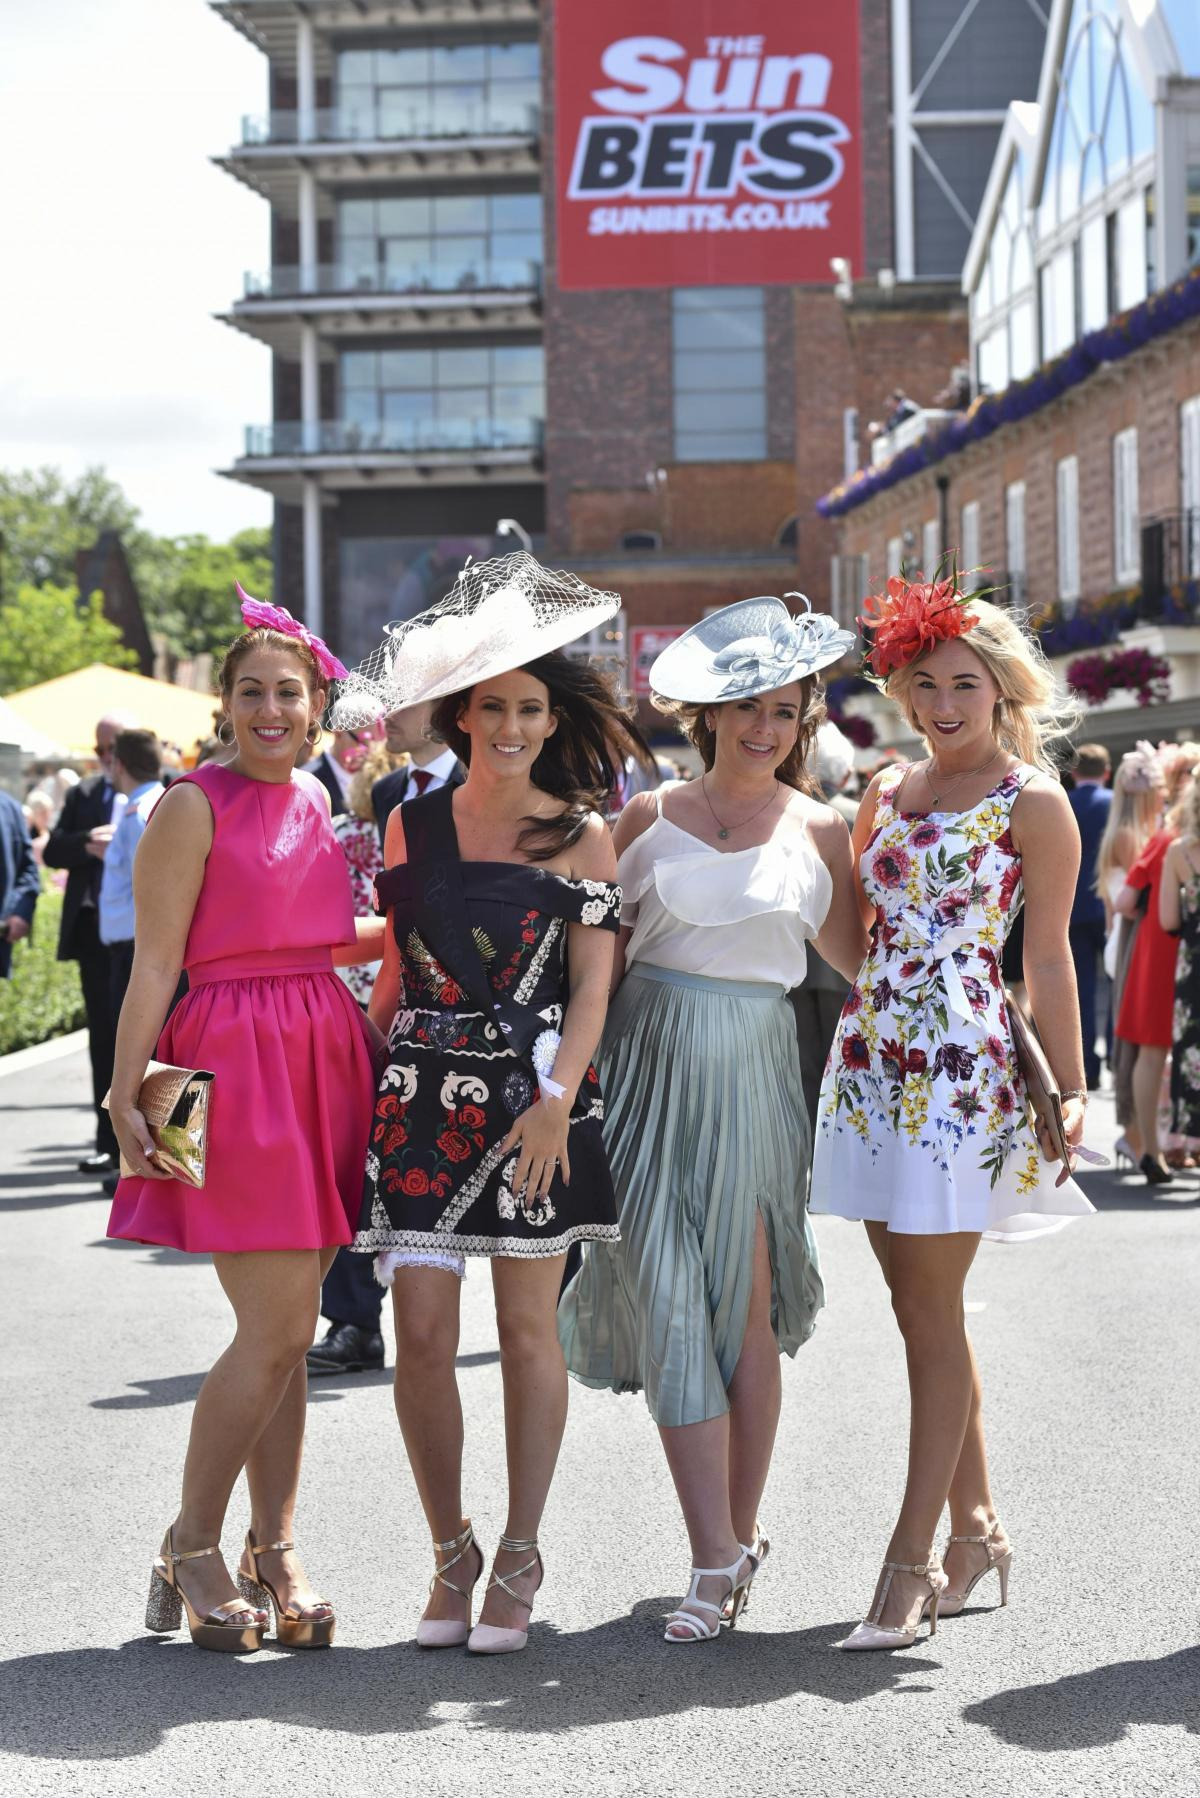 The dress exchange pocklington - Crowds Flock For Olly Murs At Races